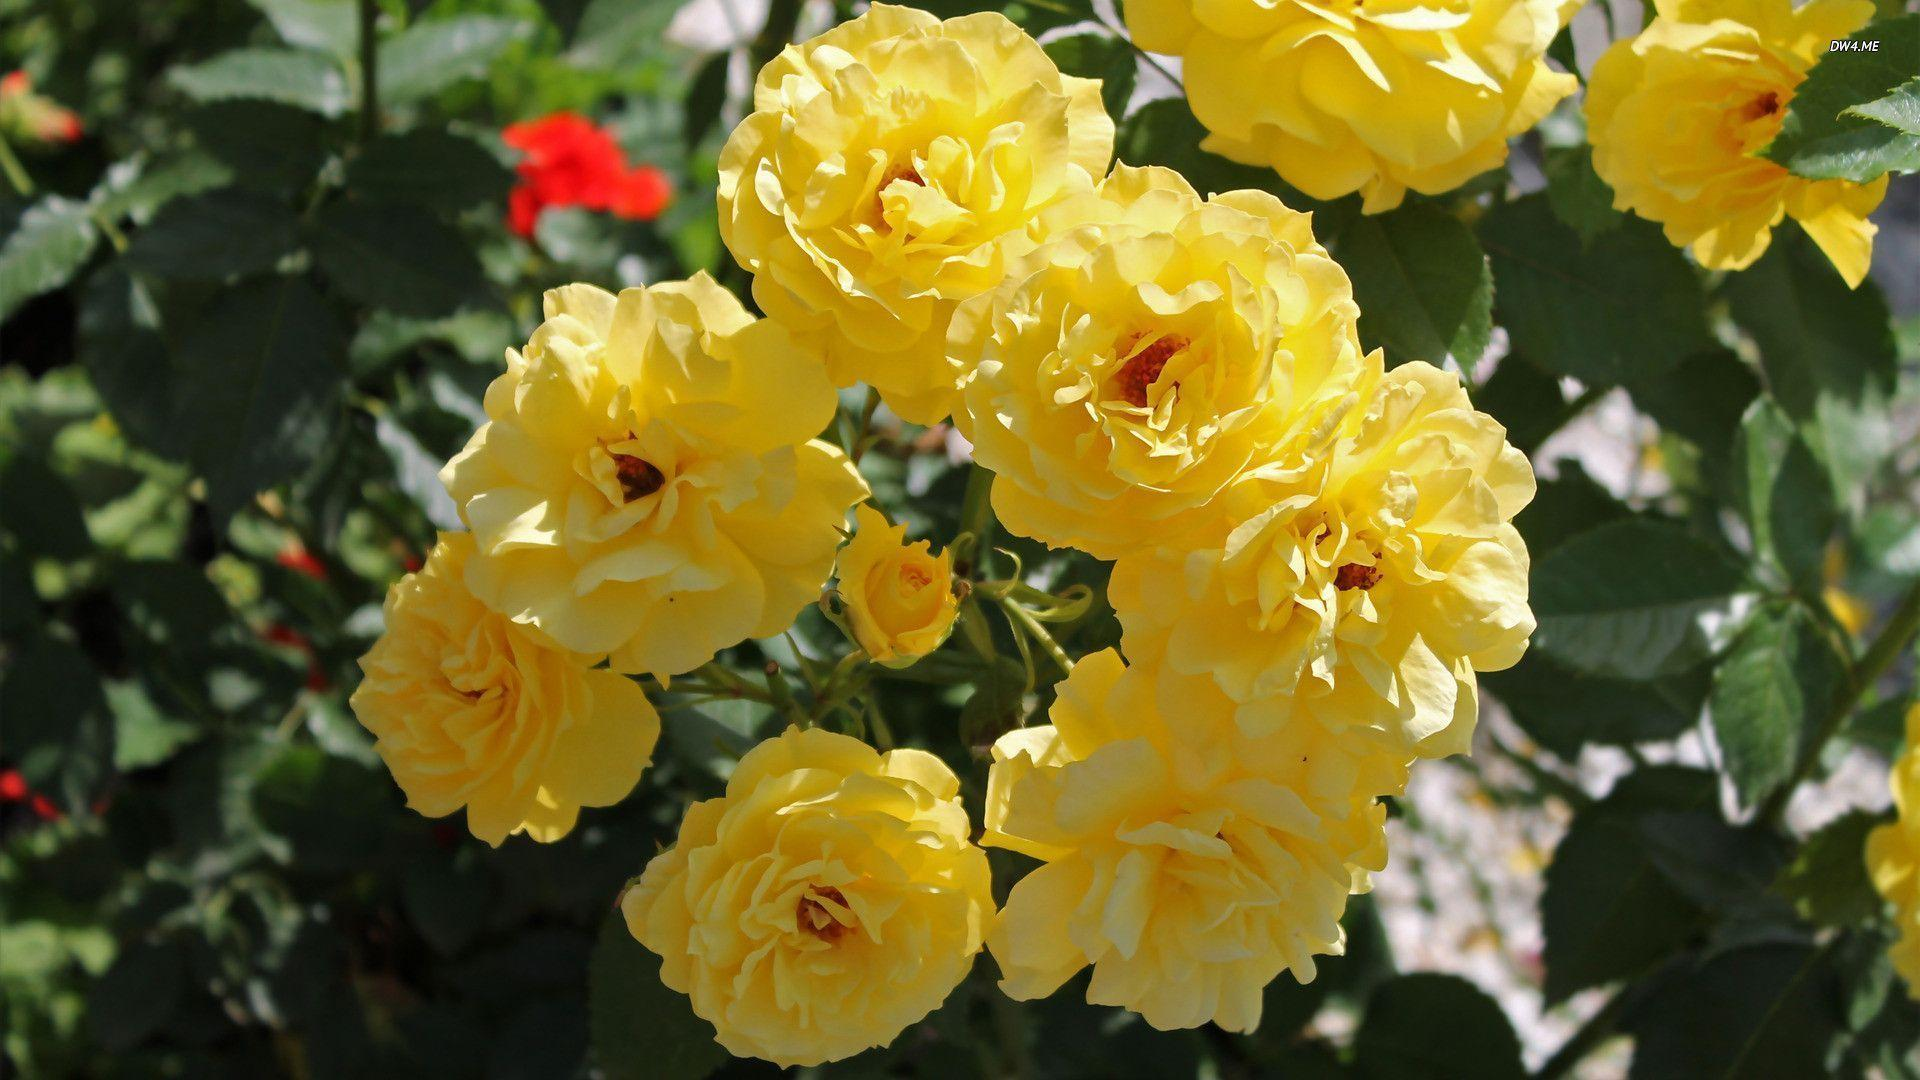 wallpaper of yellow roses - photo #31